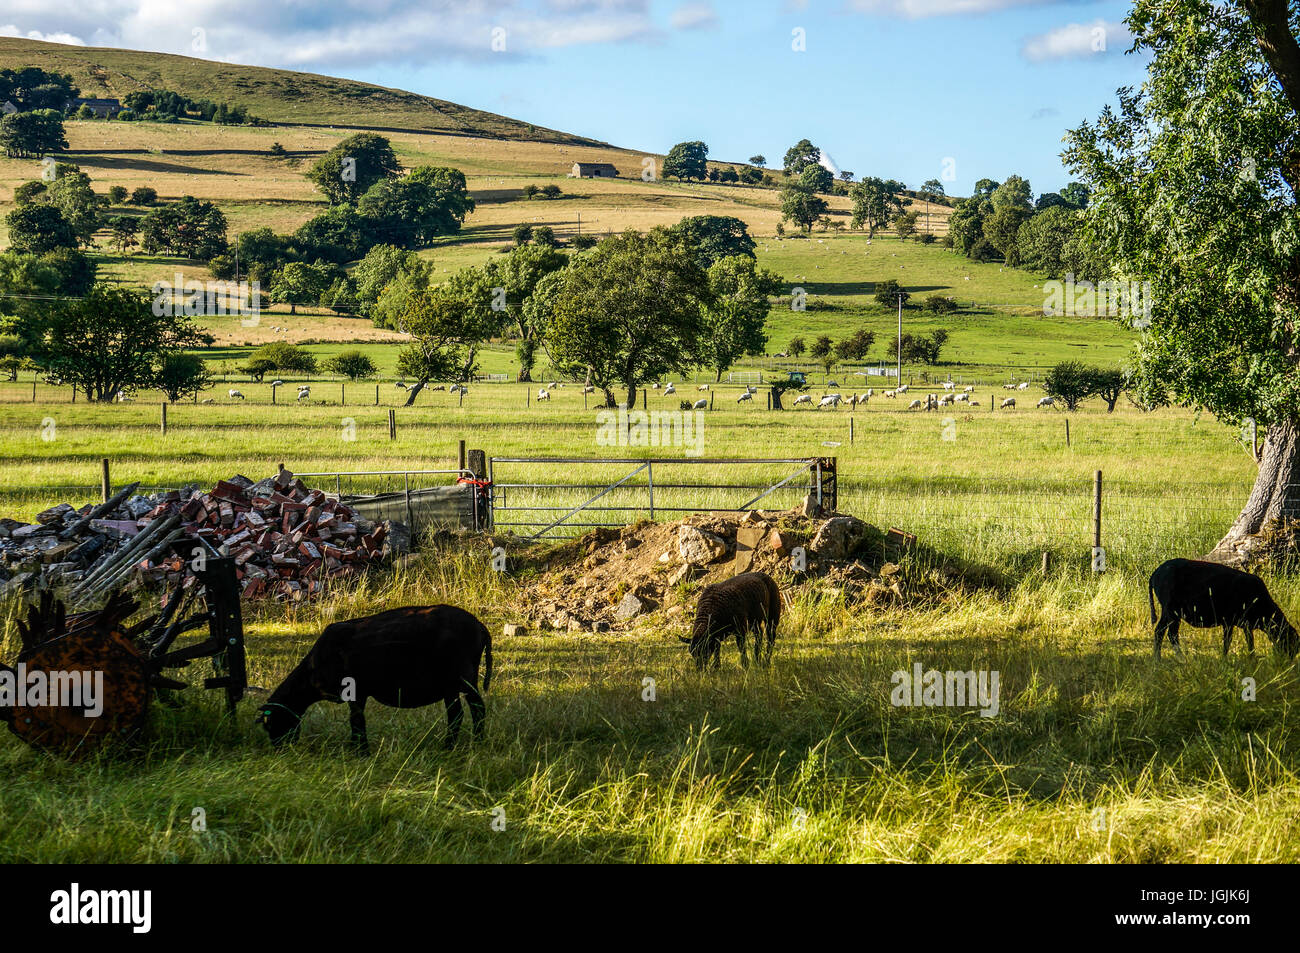 Sheep grazing in a field with a hillside backdrop, between Castleton and Hope in the Peak District, Derbyshire, Stock Photo